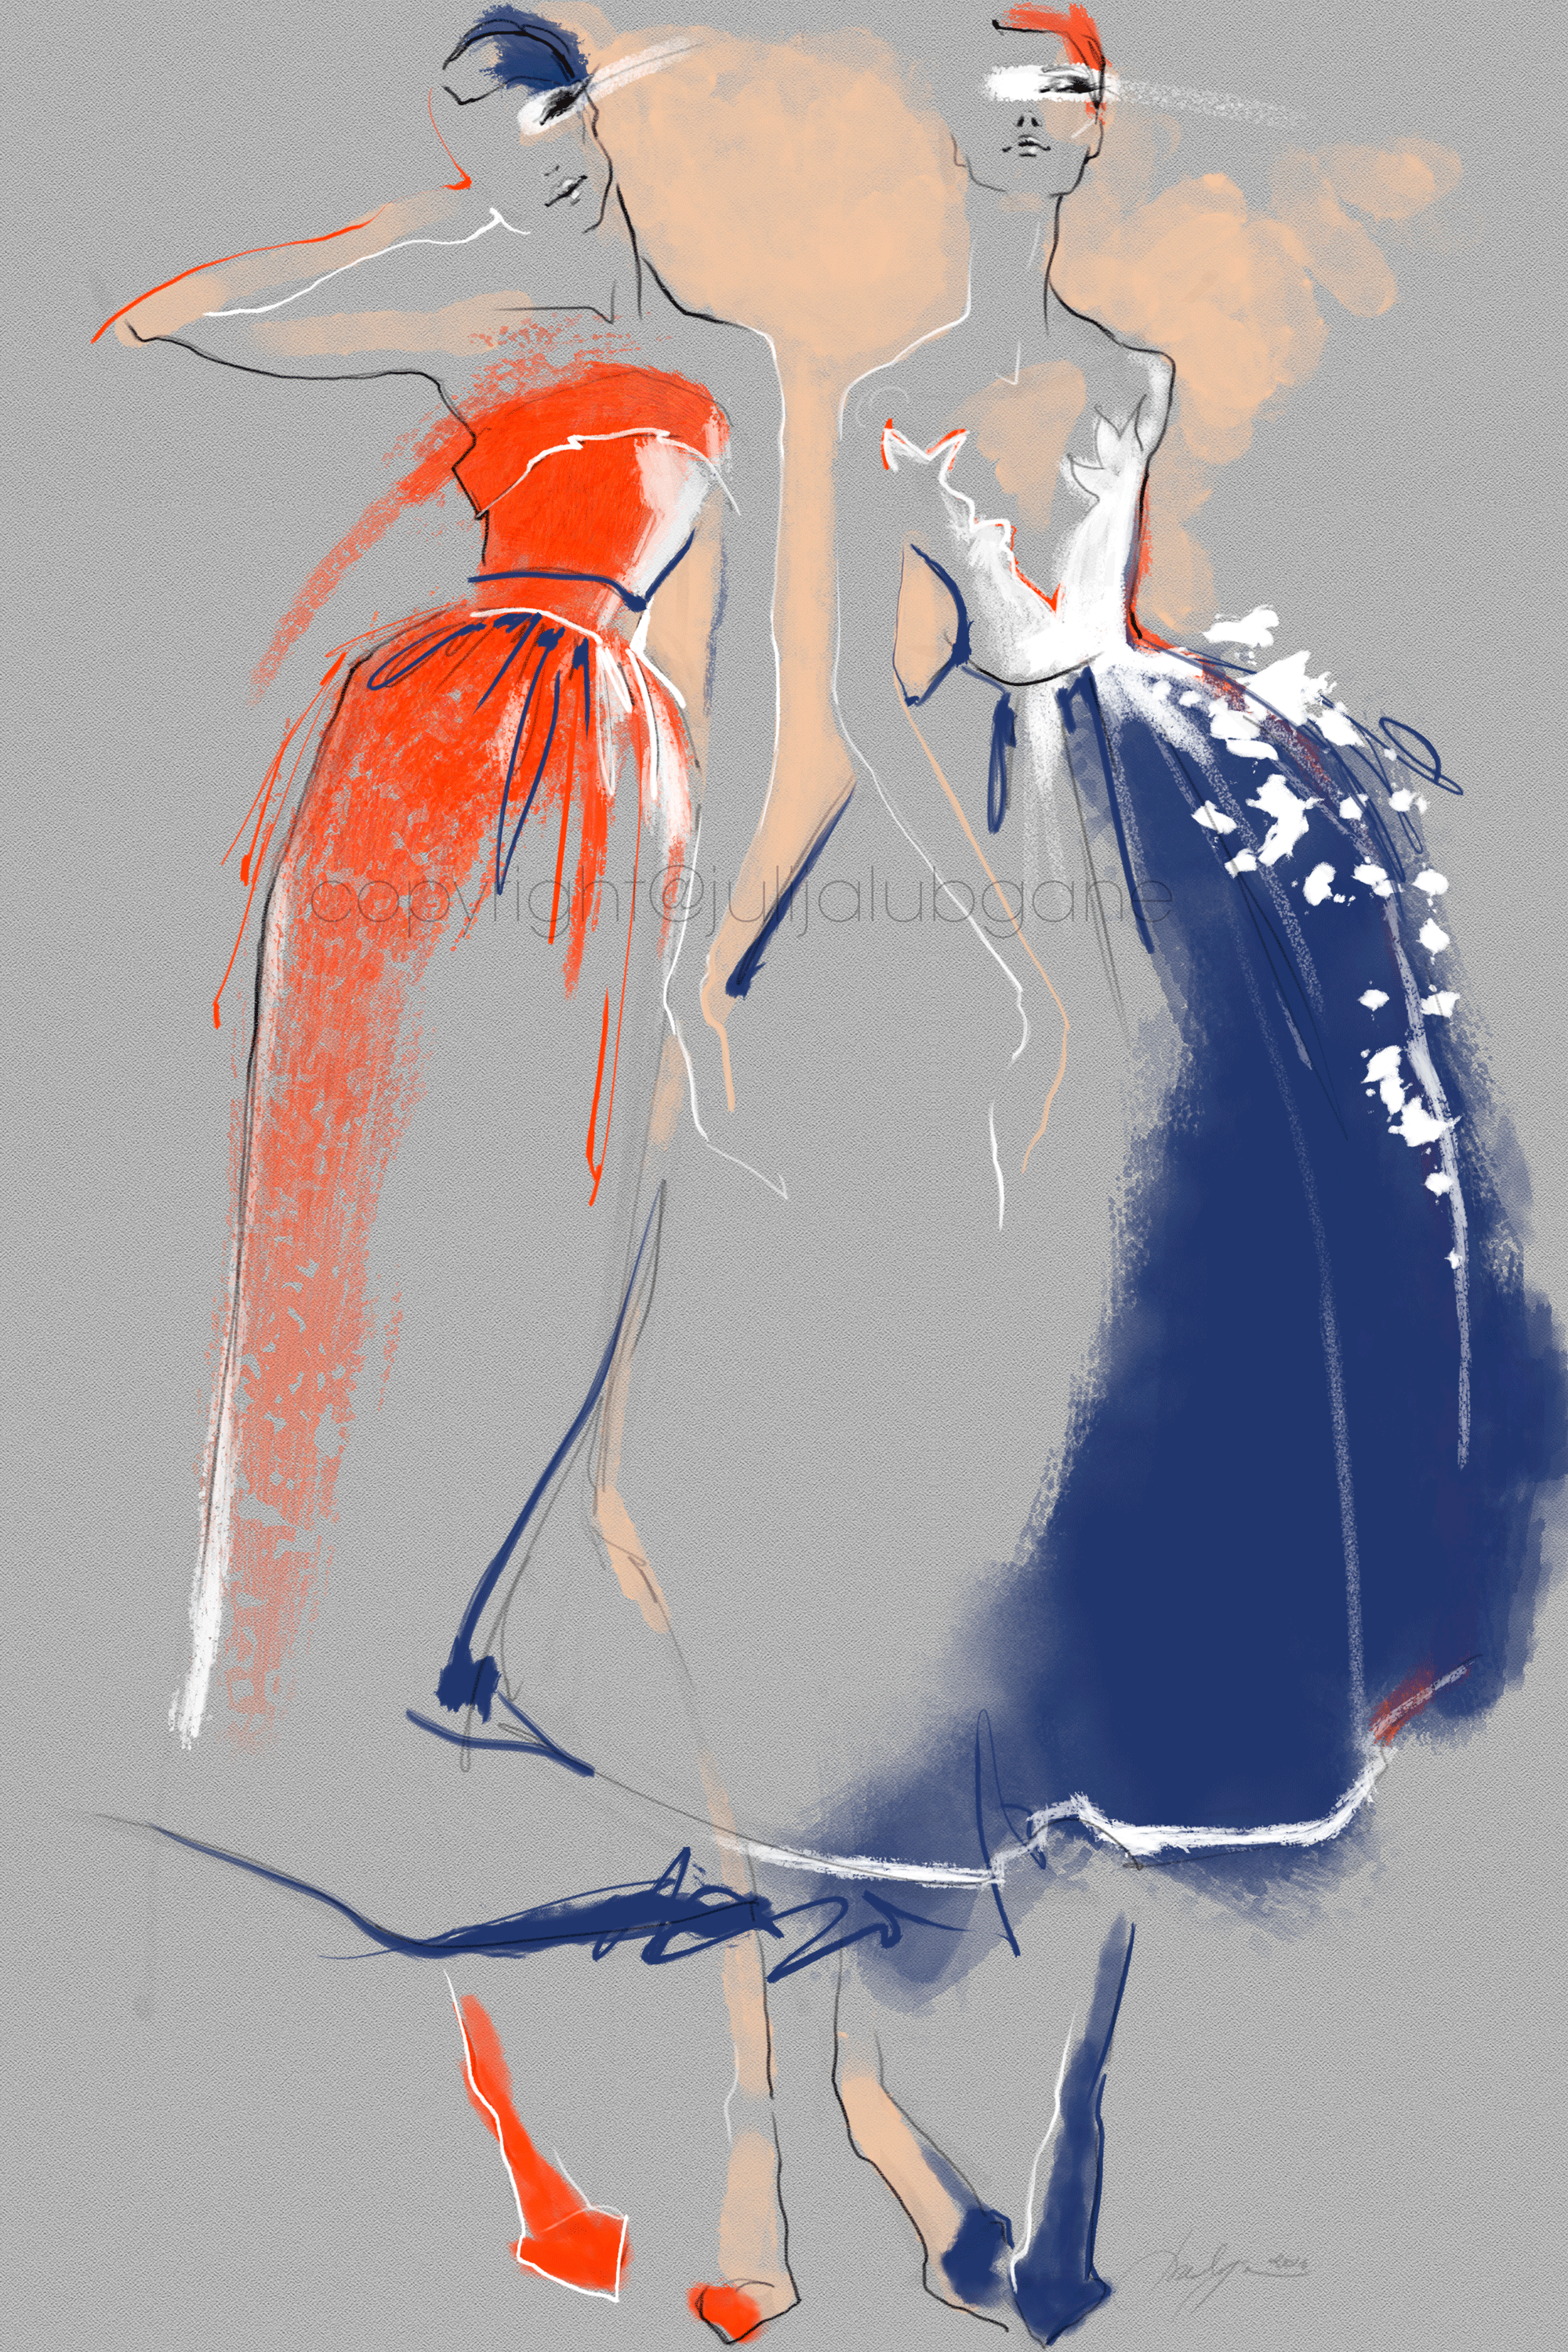 These Illustrations Were Inspired By 2016 Fashion Week I Illustrate On Wacom Cintiq Tablet Using Custom Pe Fashion Art Illustration Illustration Fashion Design